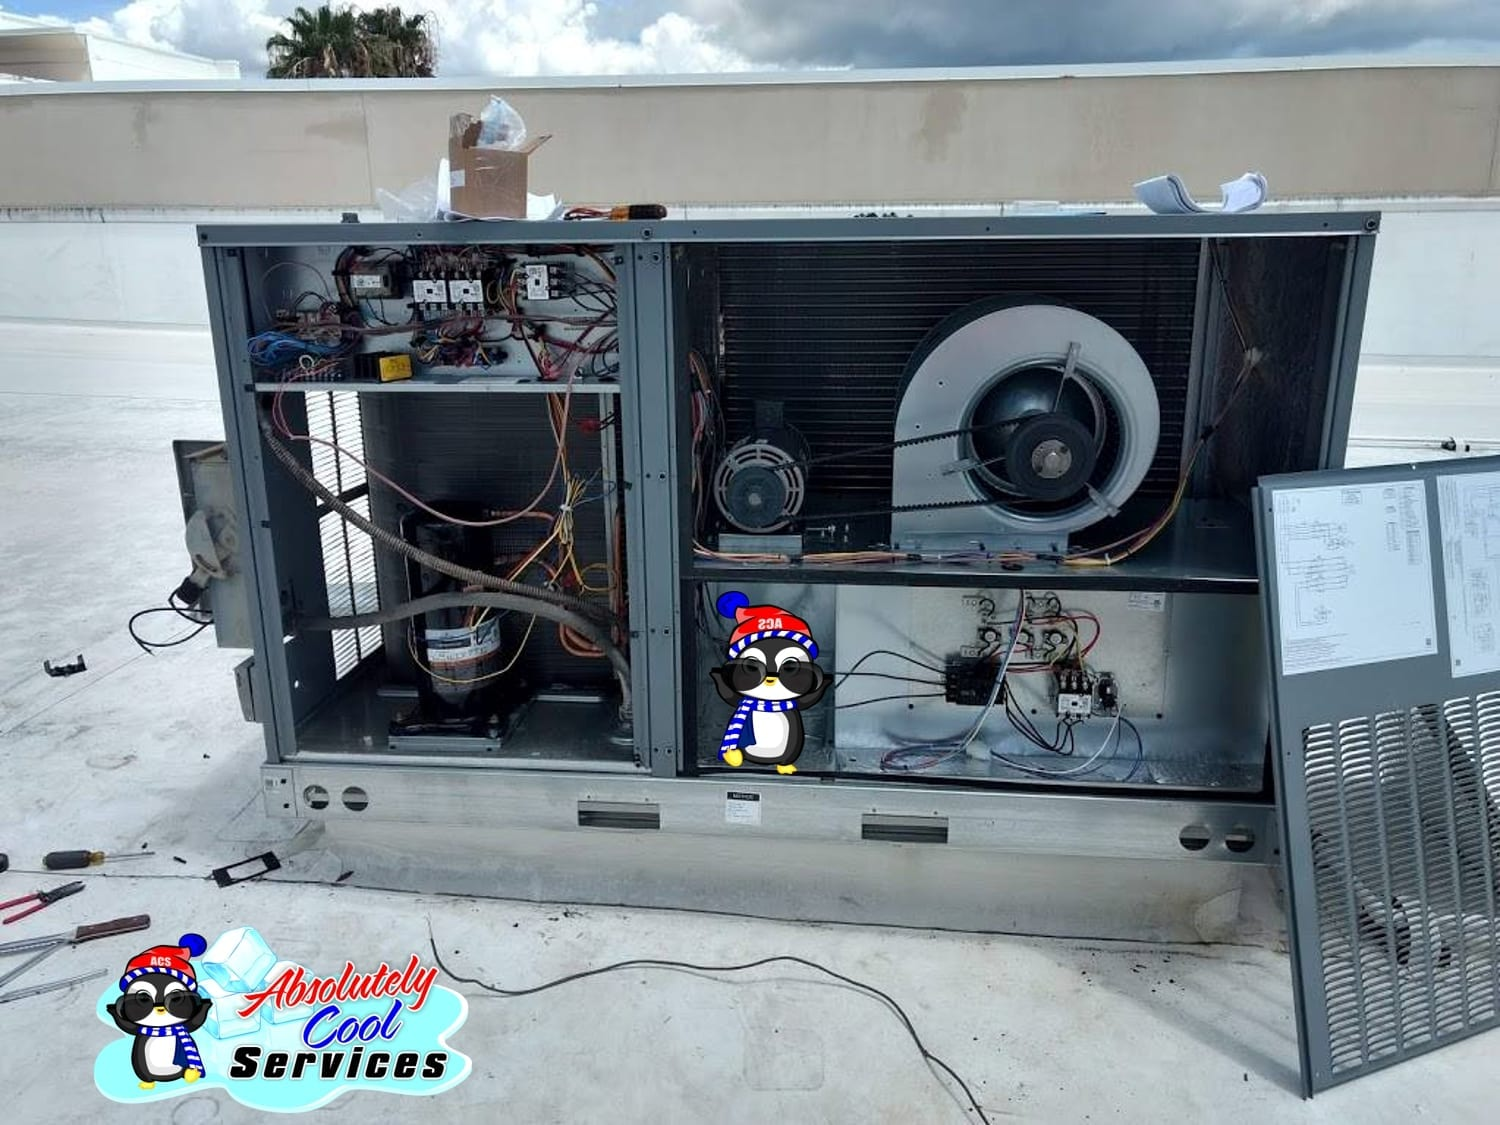 Roof Air Conditioning | Emergency Air Conditioning Diagnosis Company near West Palm Beach